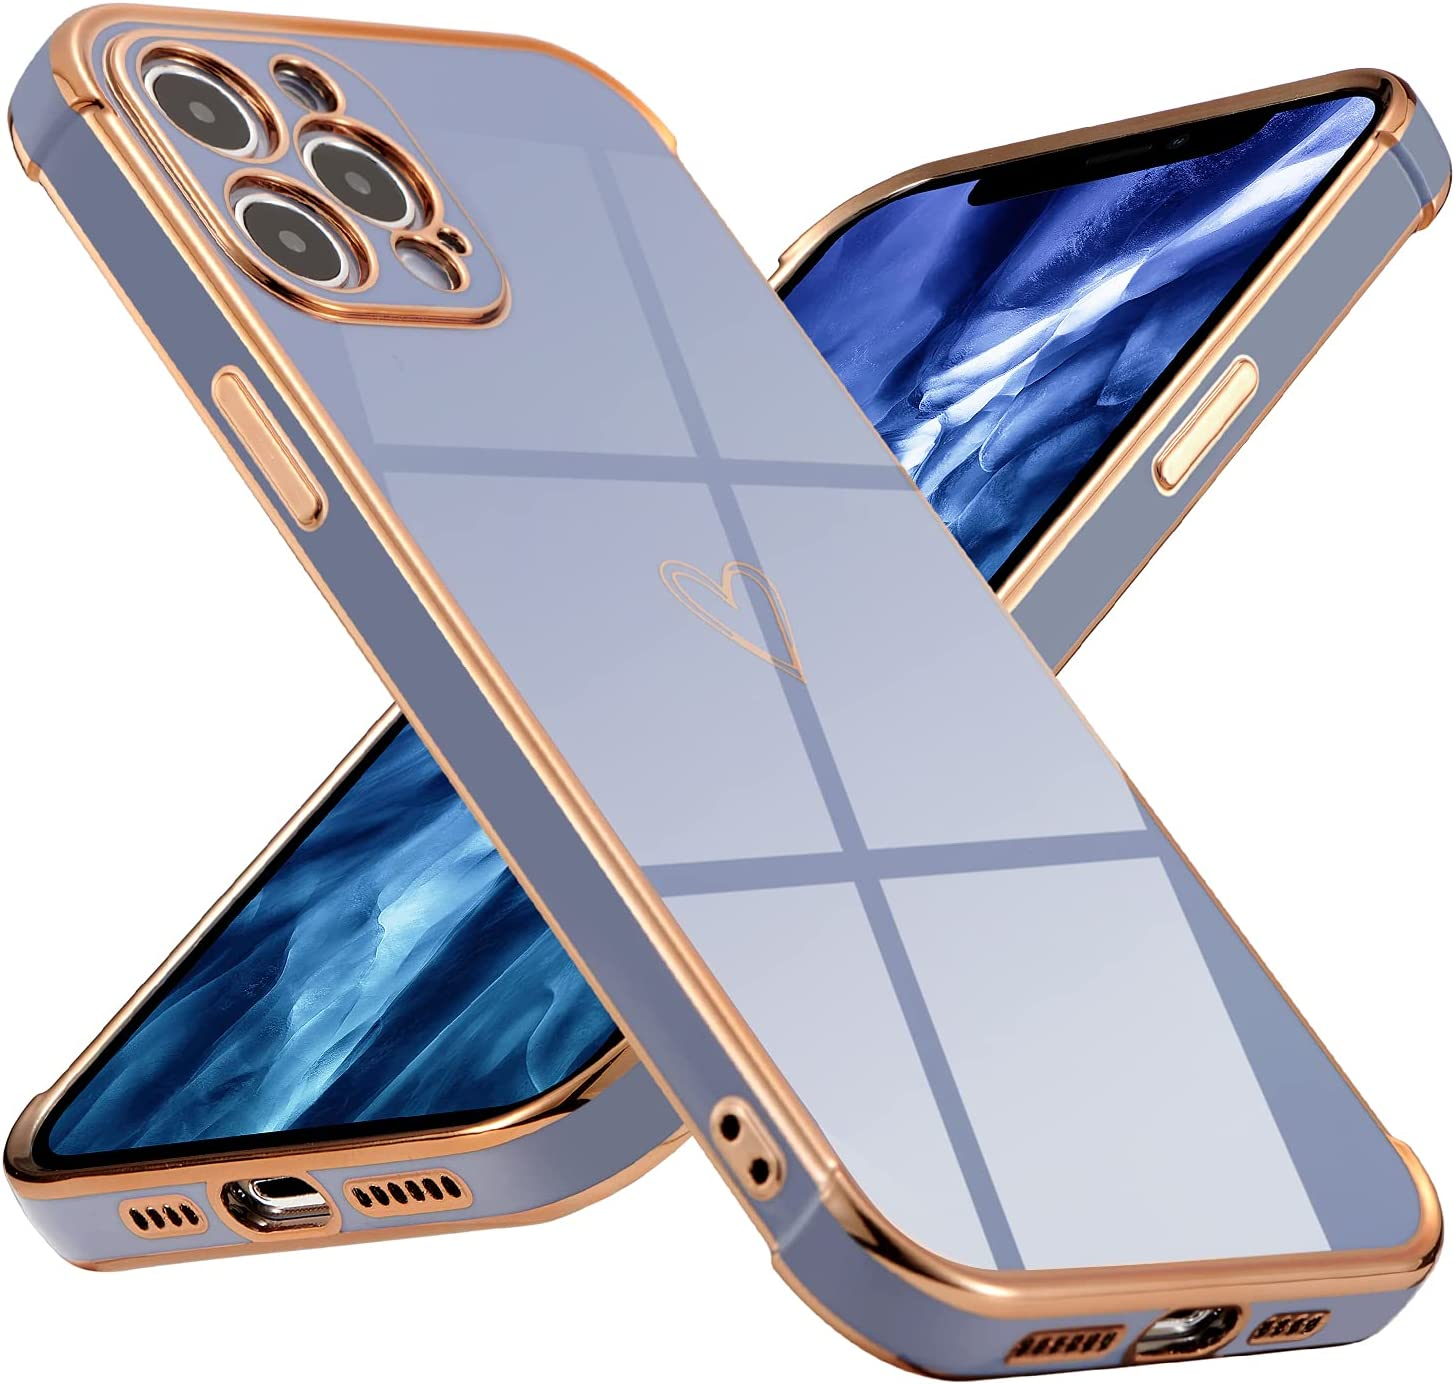 DEFBSC Electroplating Cute Case for iPhone 12 Pro, Soft TPU Bumper Protective Plating Case Clear Heart Case, Ultra Thin Anti-Scratch Shockproof Back Phone Shell Cover for iPhone 12 Pro 6.1